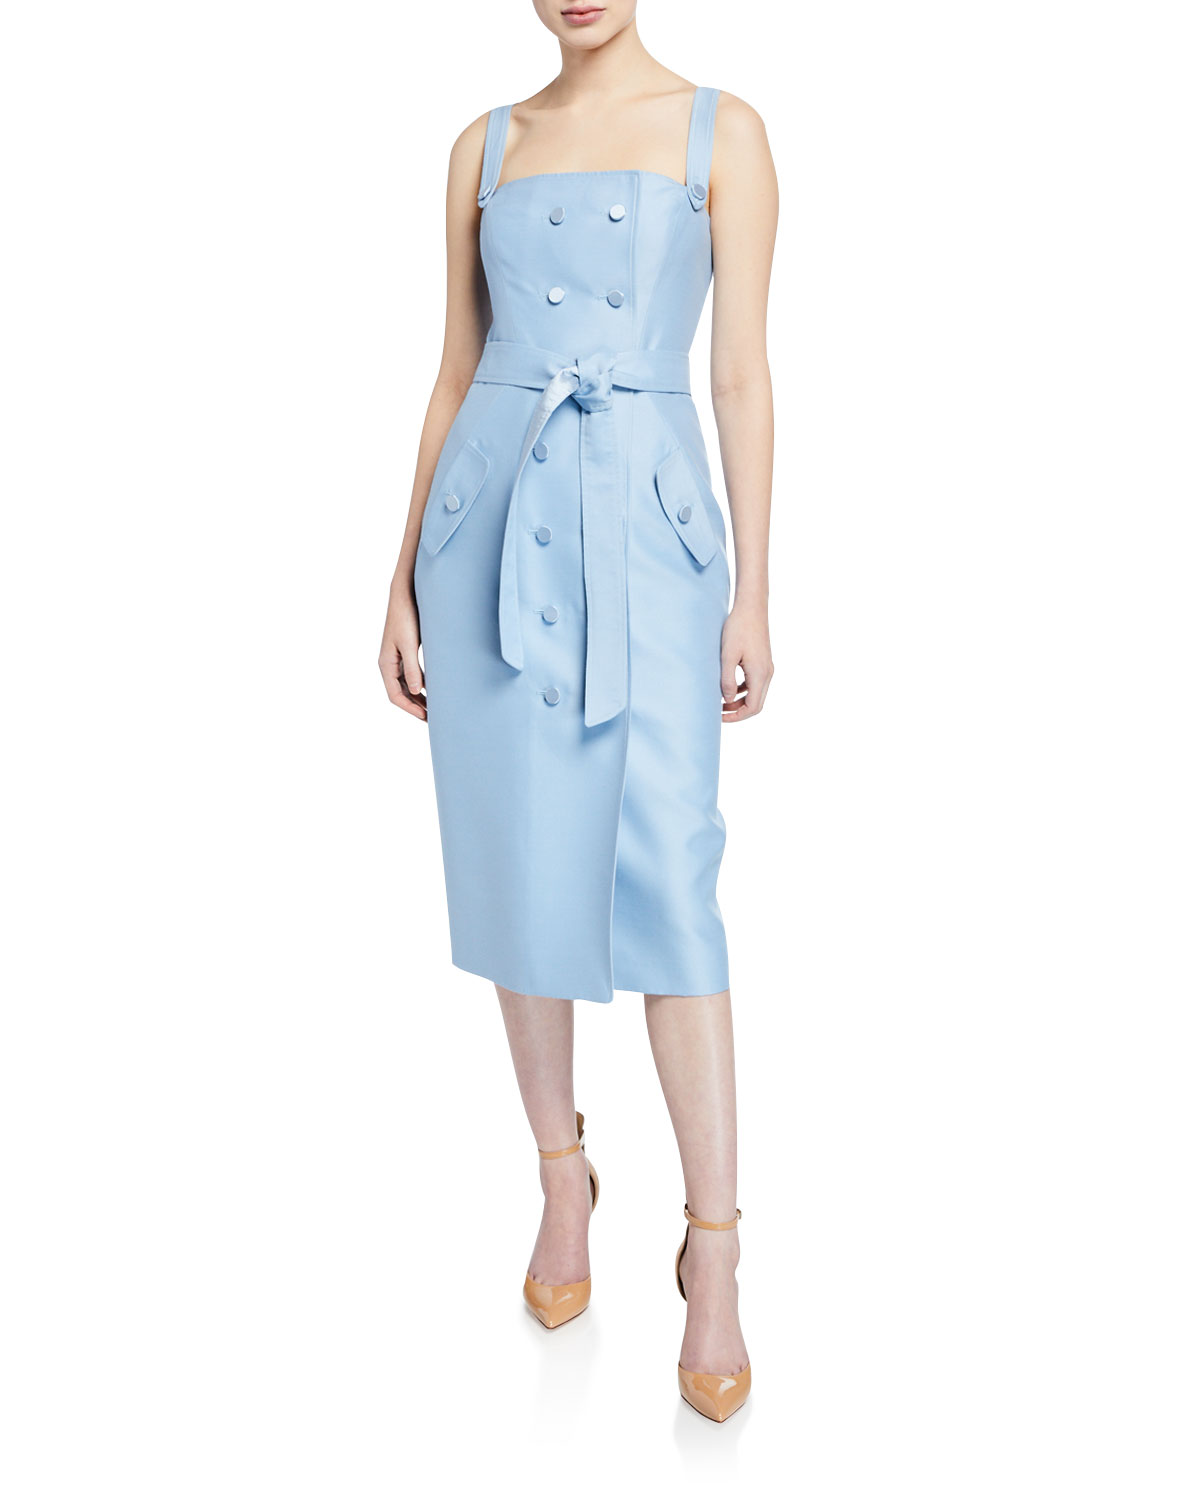 ATELIER CAITO FOR HERVE PIERRE Sleeveless Square-Neck Tie-Waist Dress in Pink